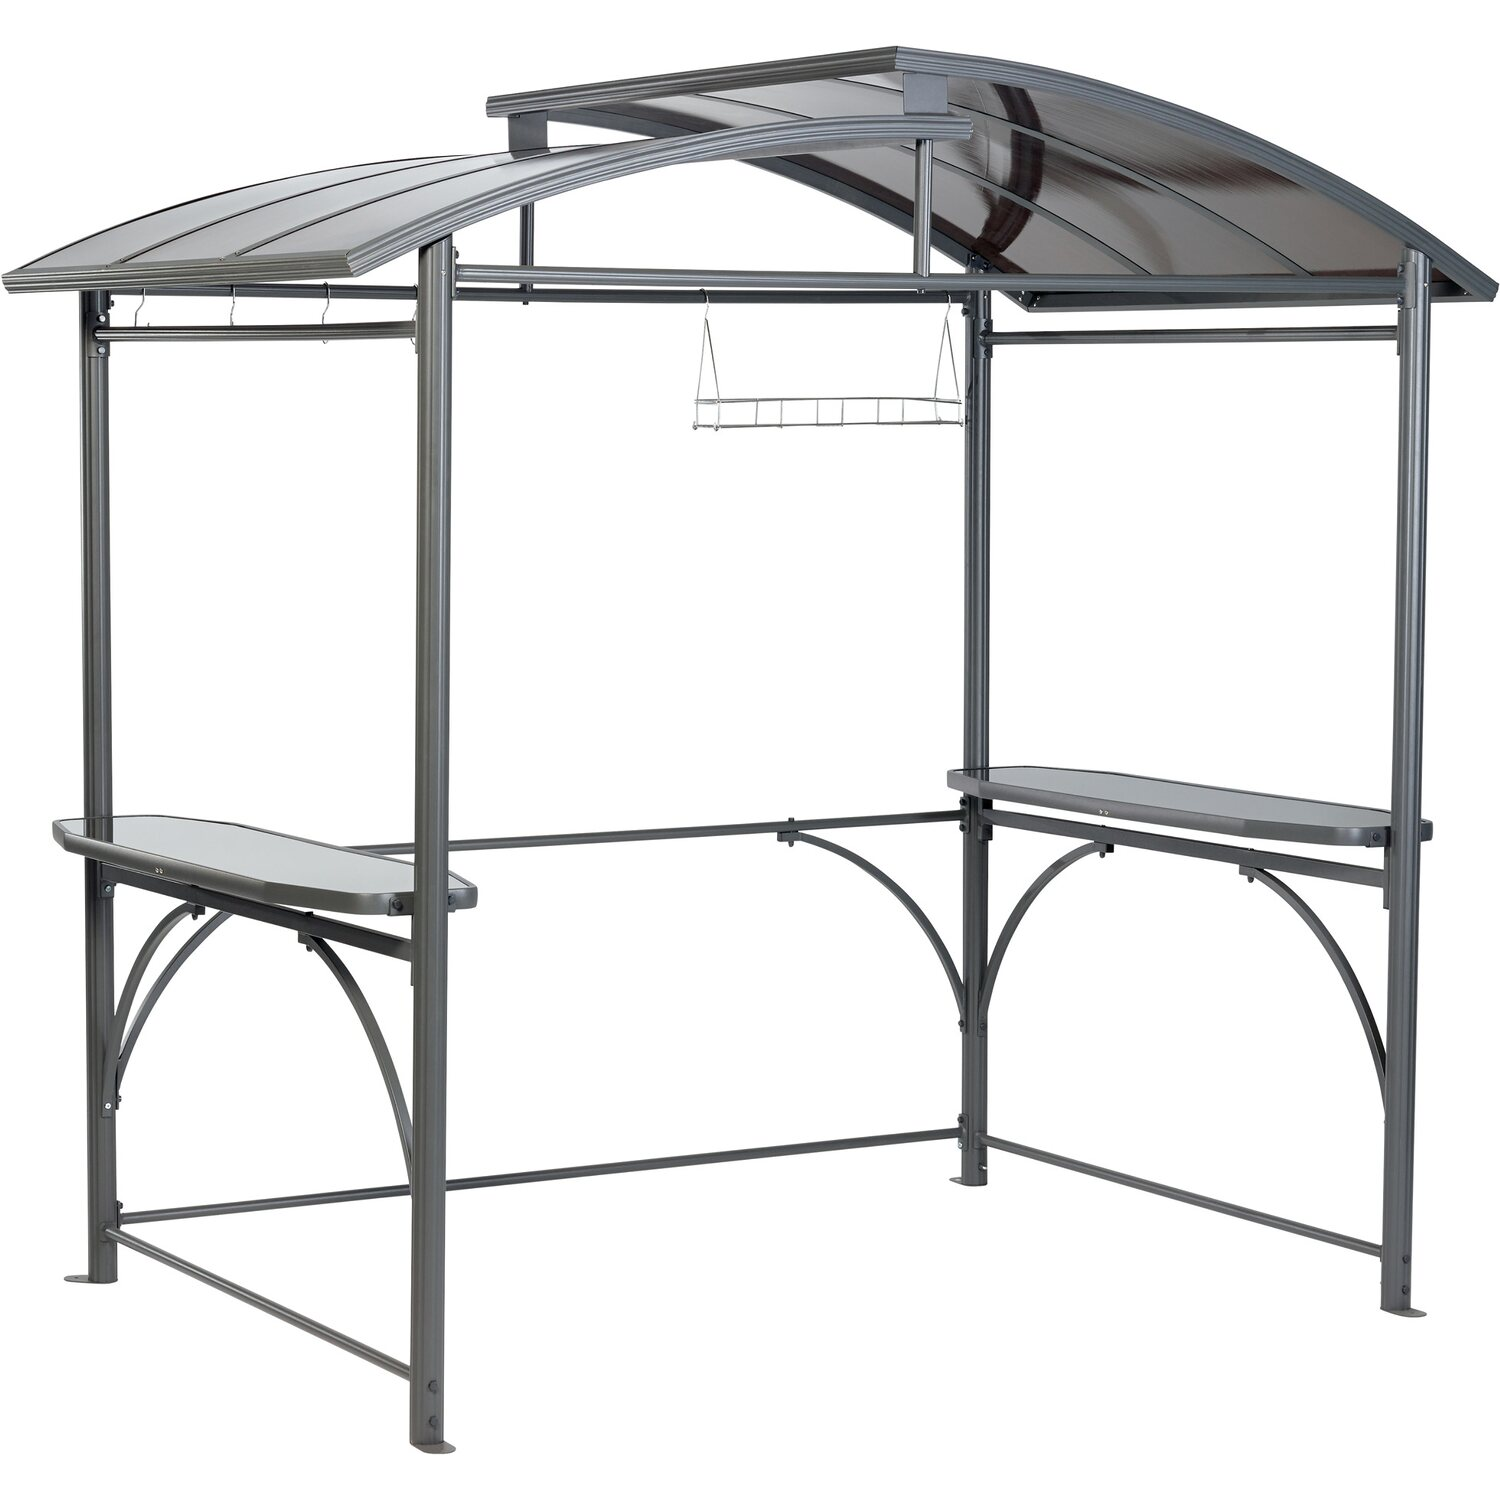 Obi gazebo lagos outdoor living acquista da obi for Obi barbecue